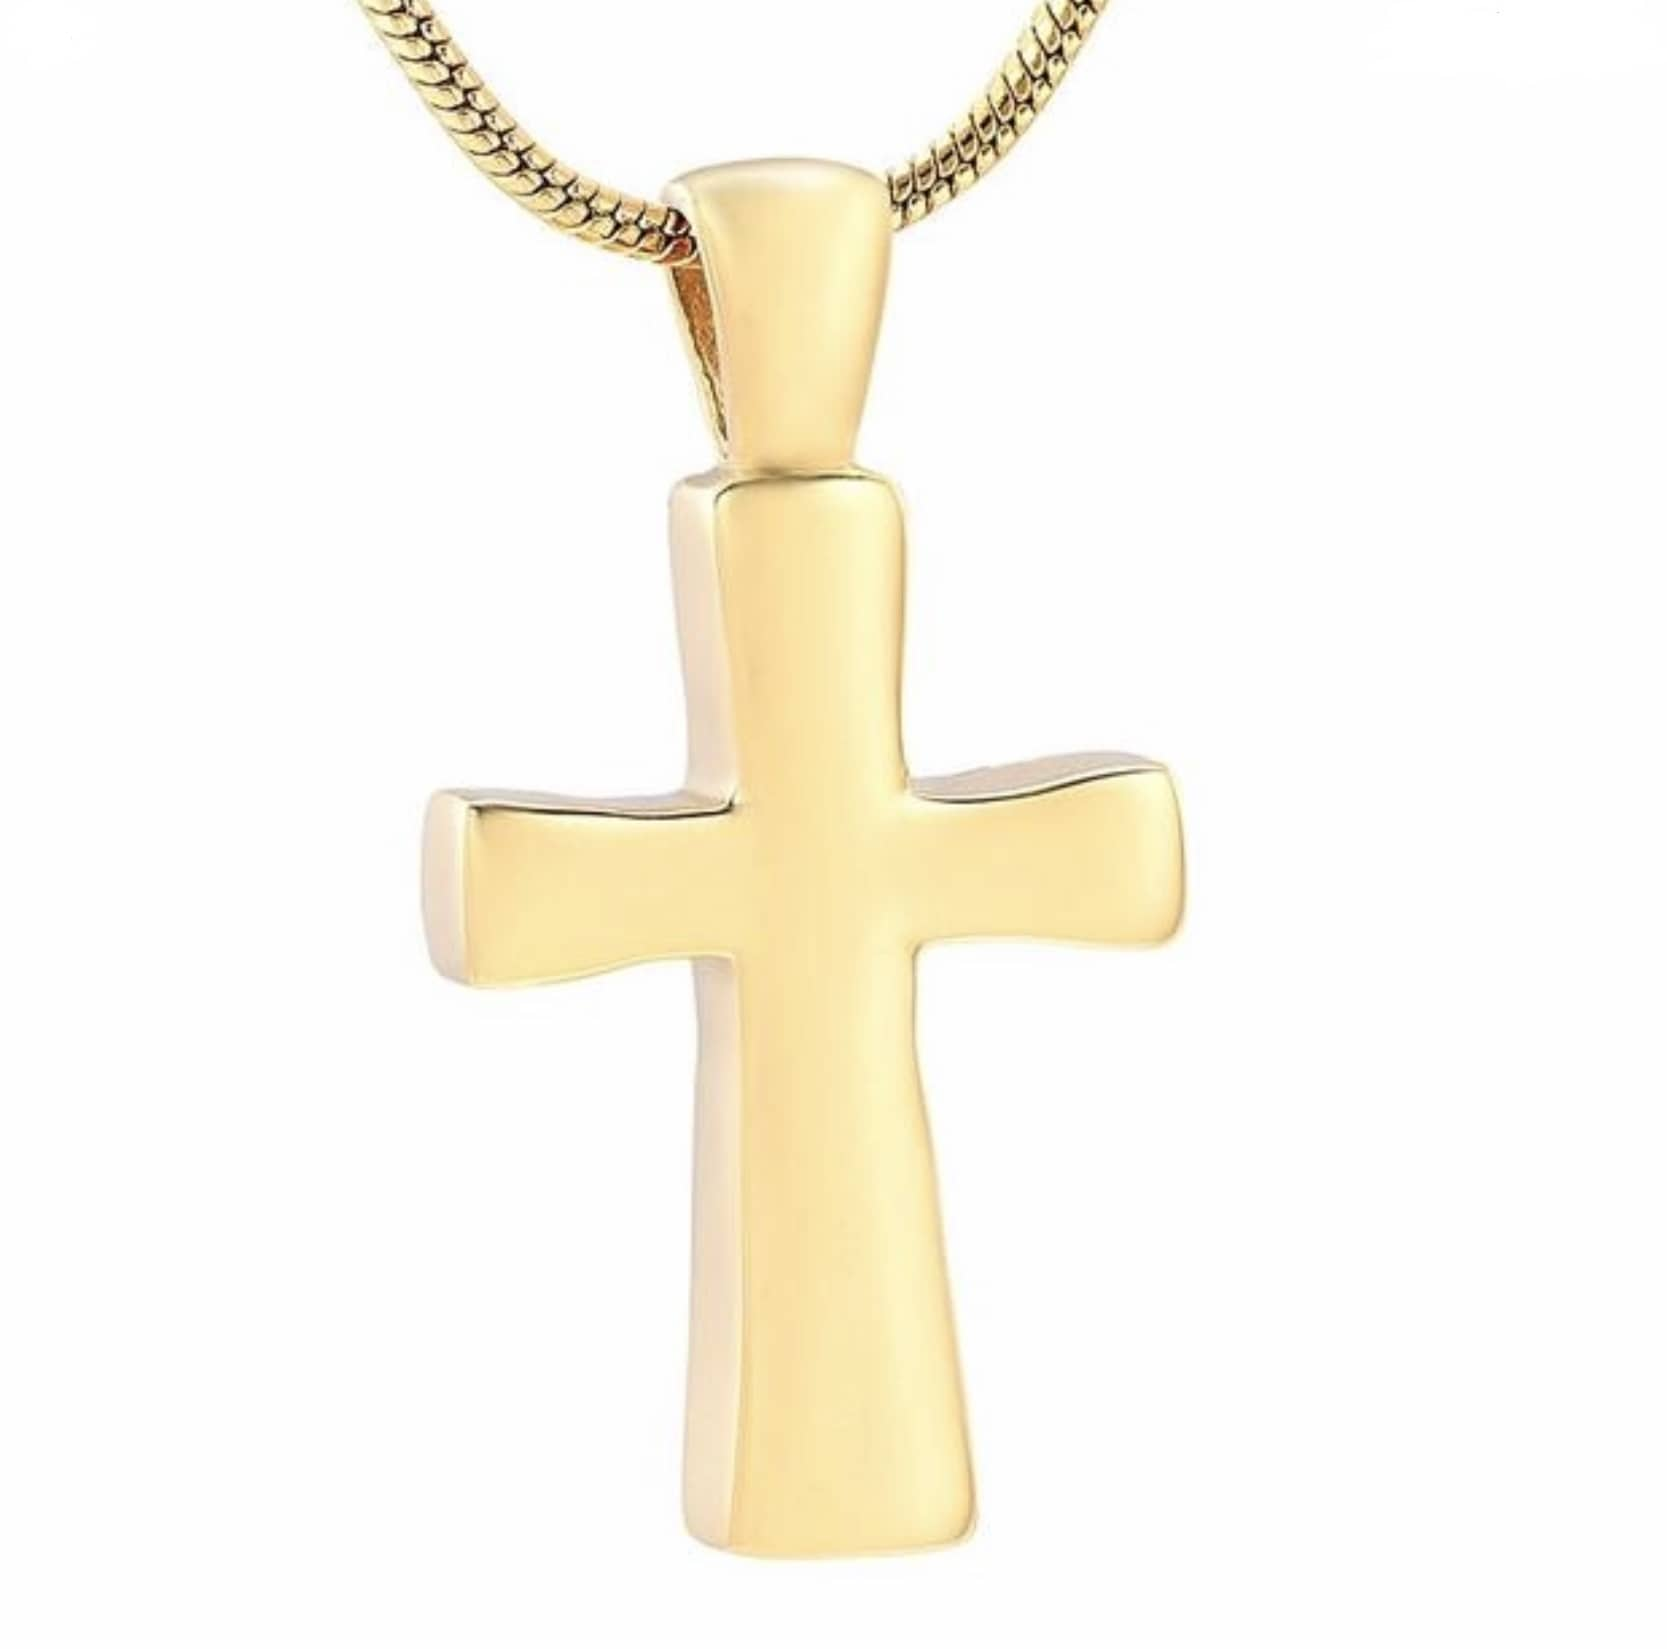 Stainless steel cross memorial cremation jewelry for pet cremation, gold color